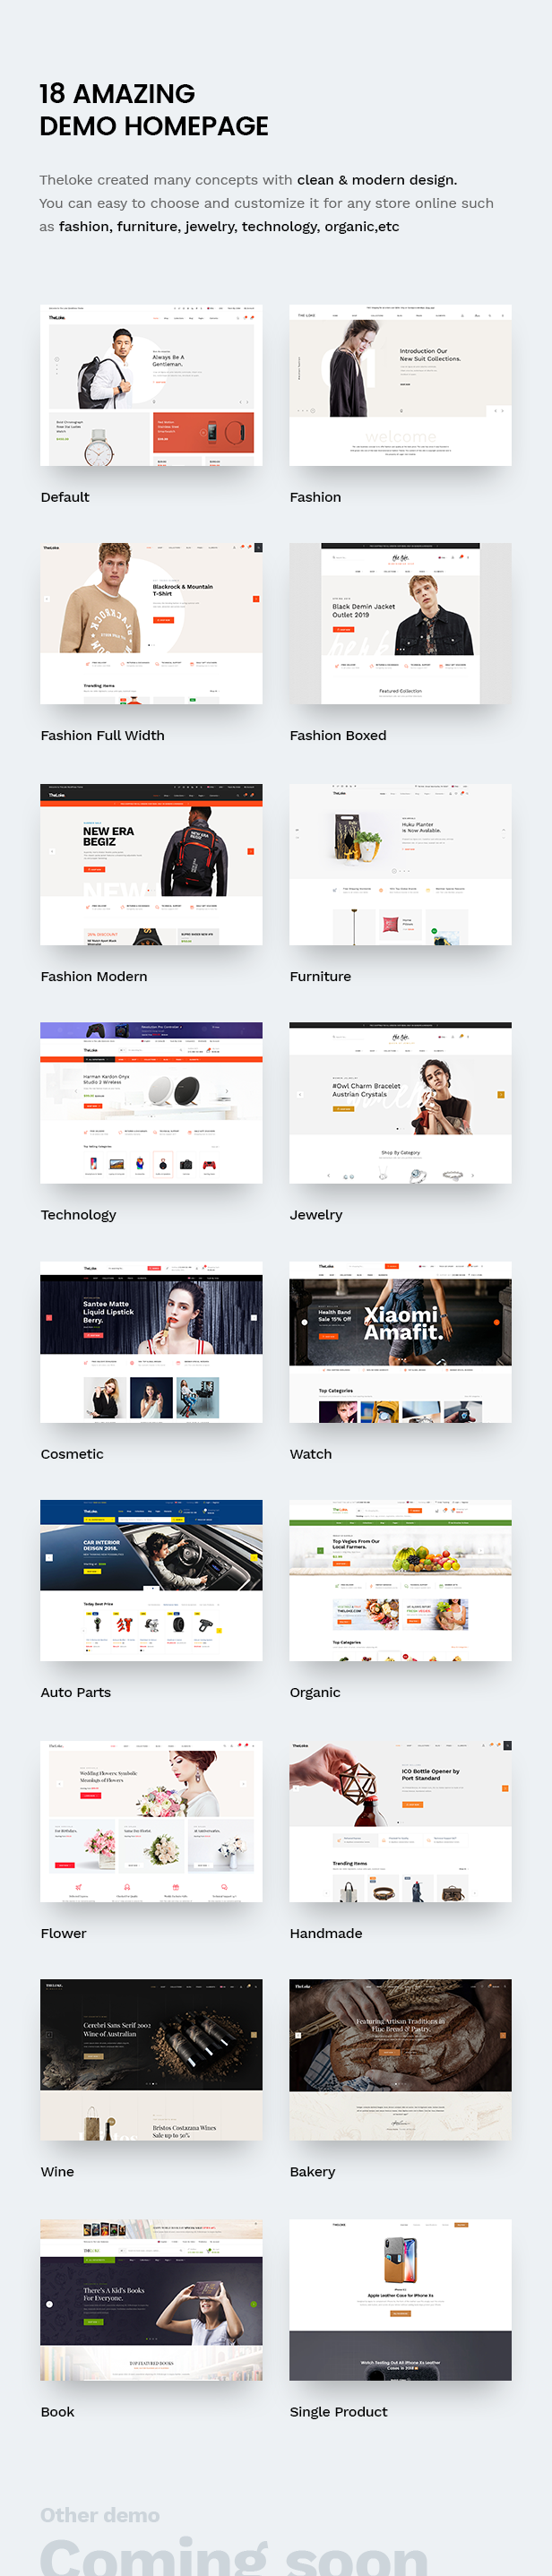 TheLoke - Clean & Modern Multi-Purpose eCommerce PSD Template - 5